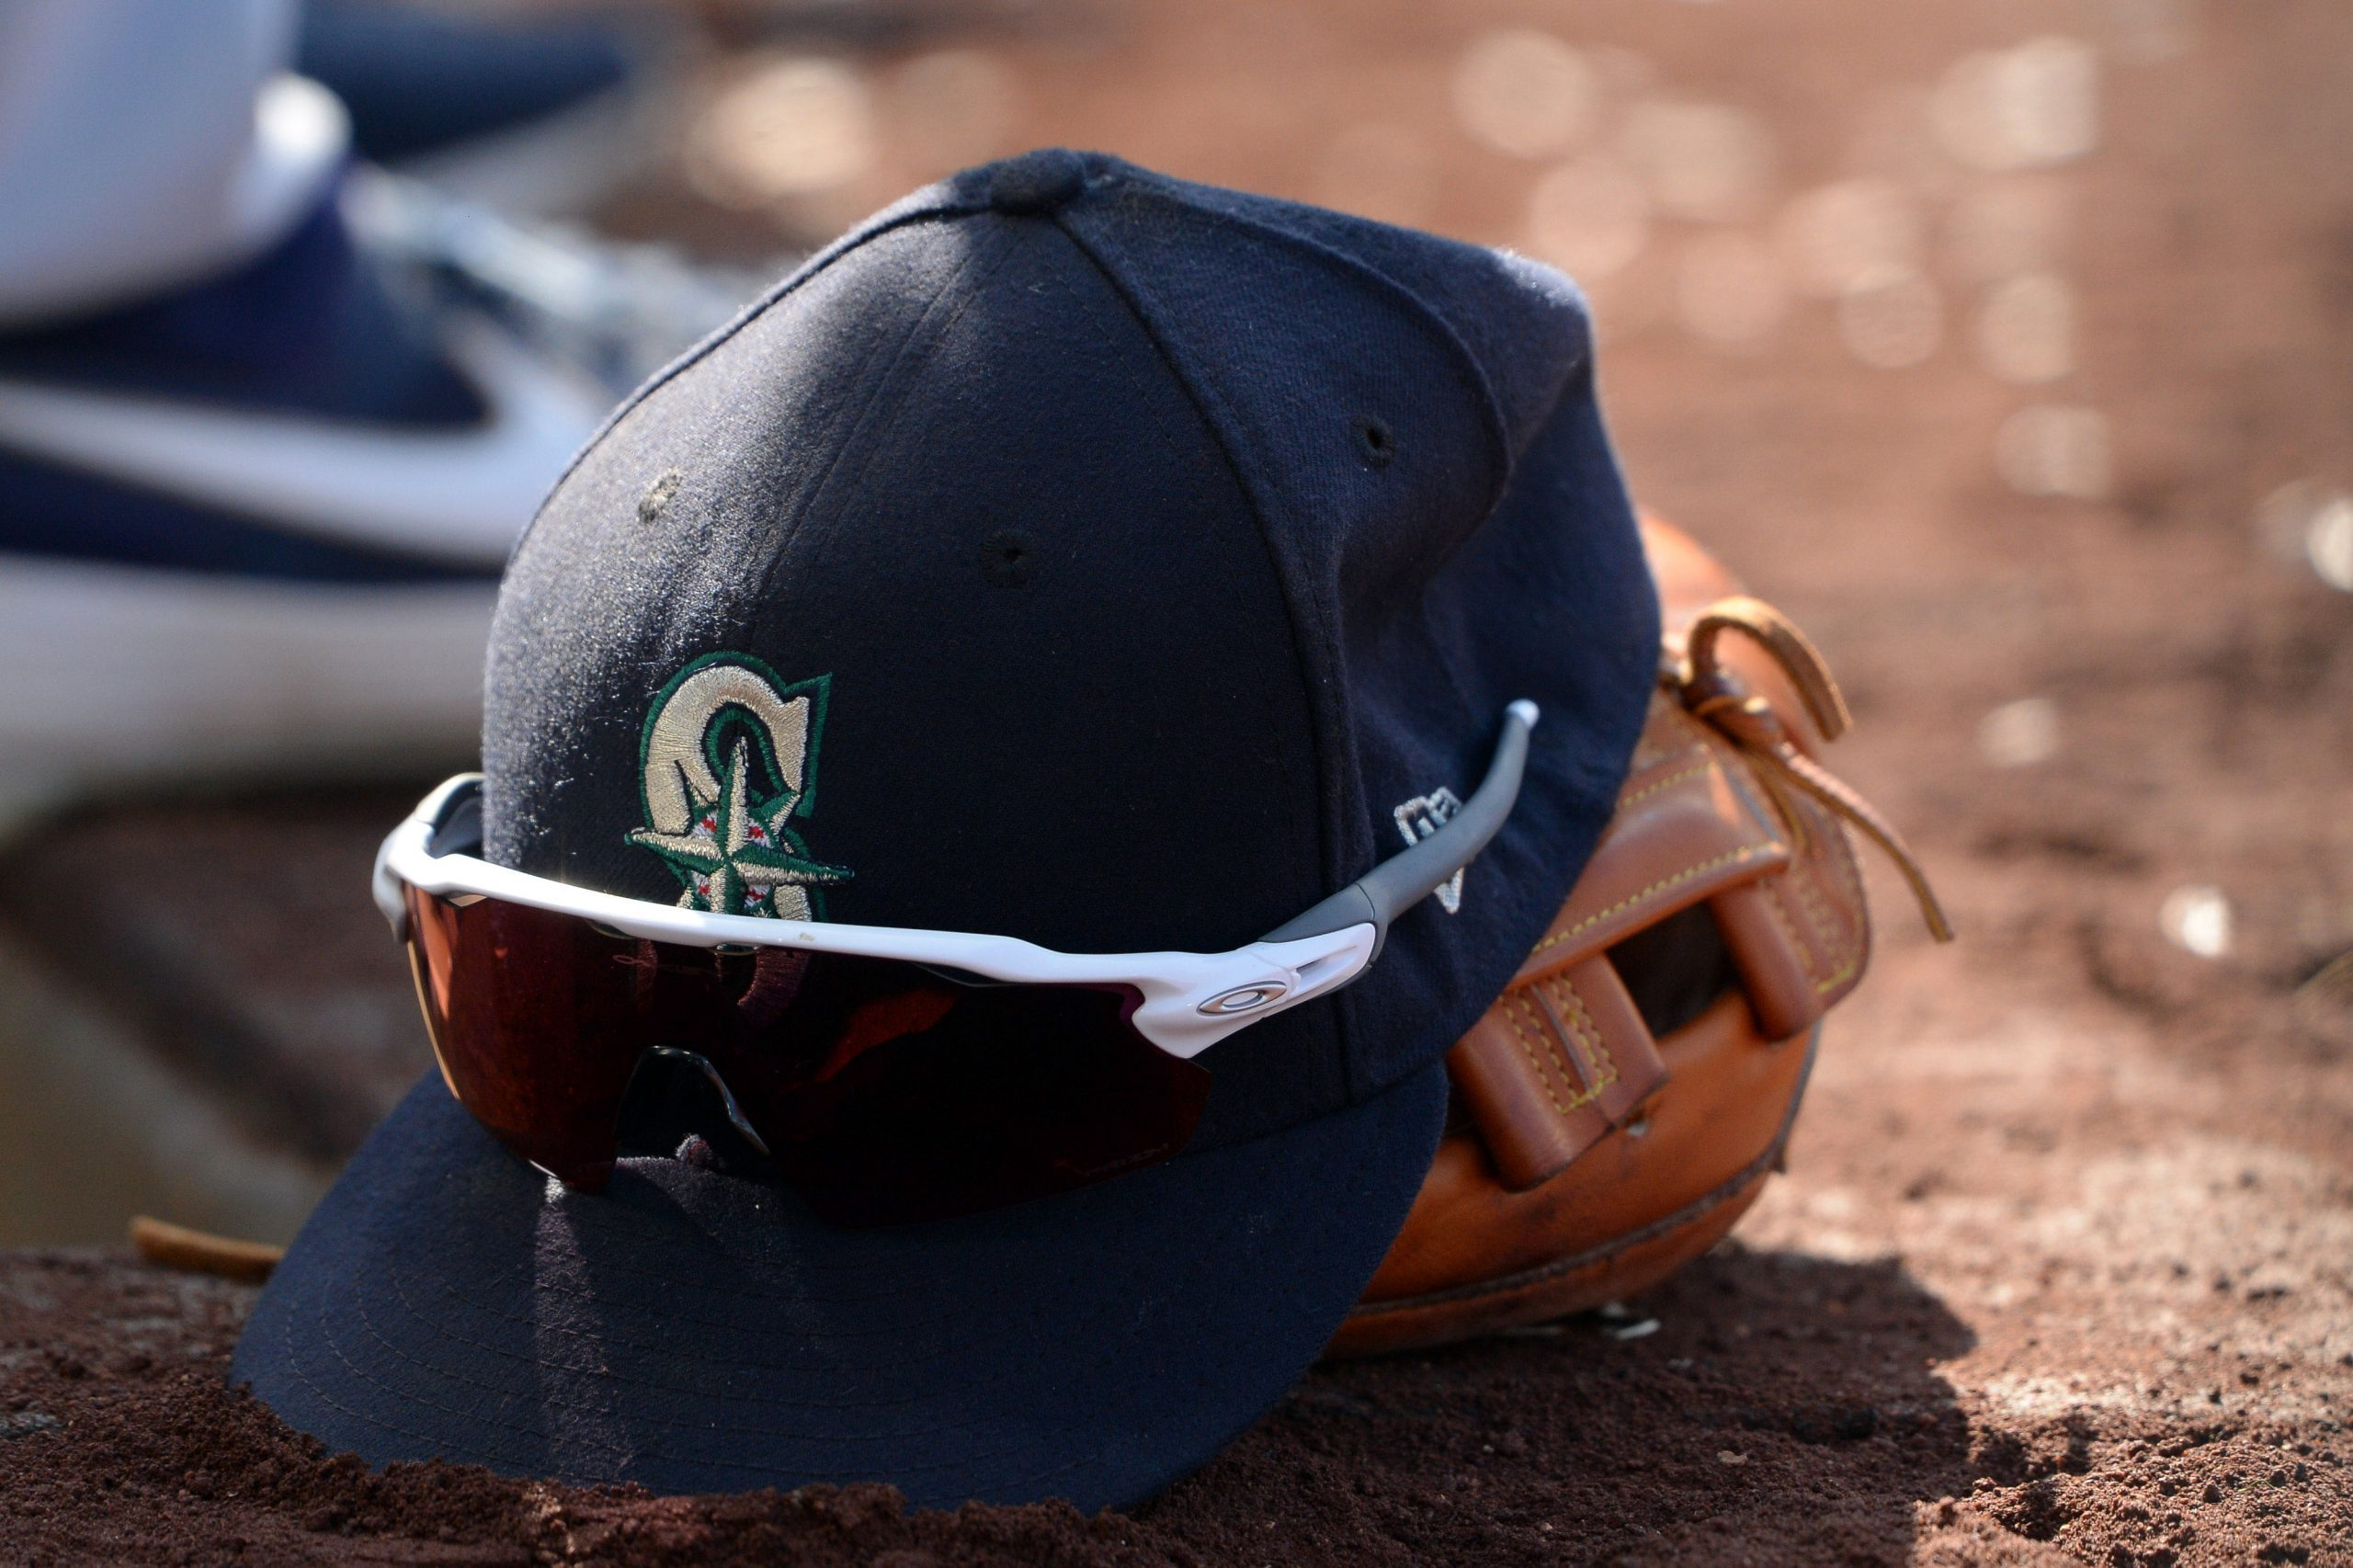 Seattle Mariners Select Emerson Hancock with 6th Pick in MLB Draft